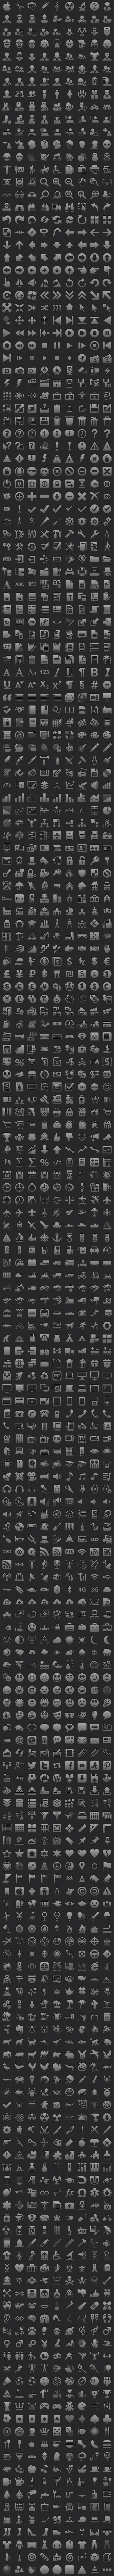 Icons for iPhone Navigation Toolbars